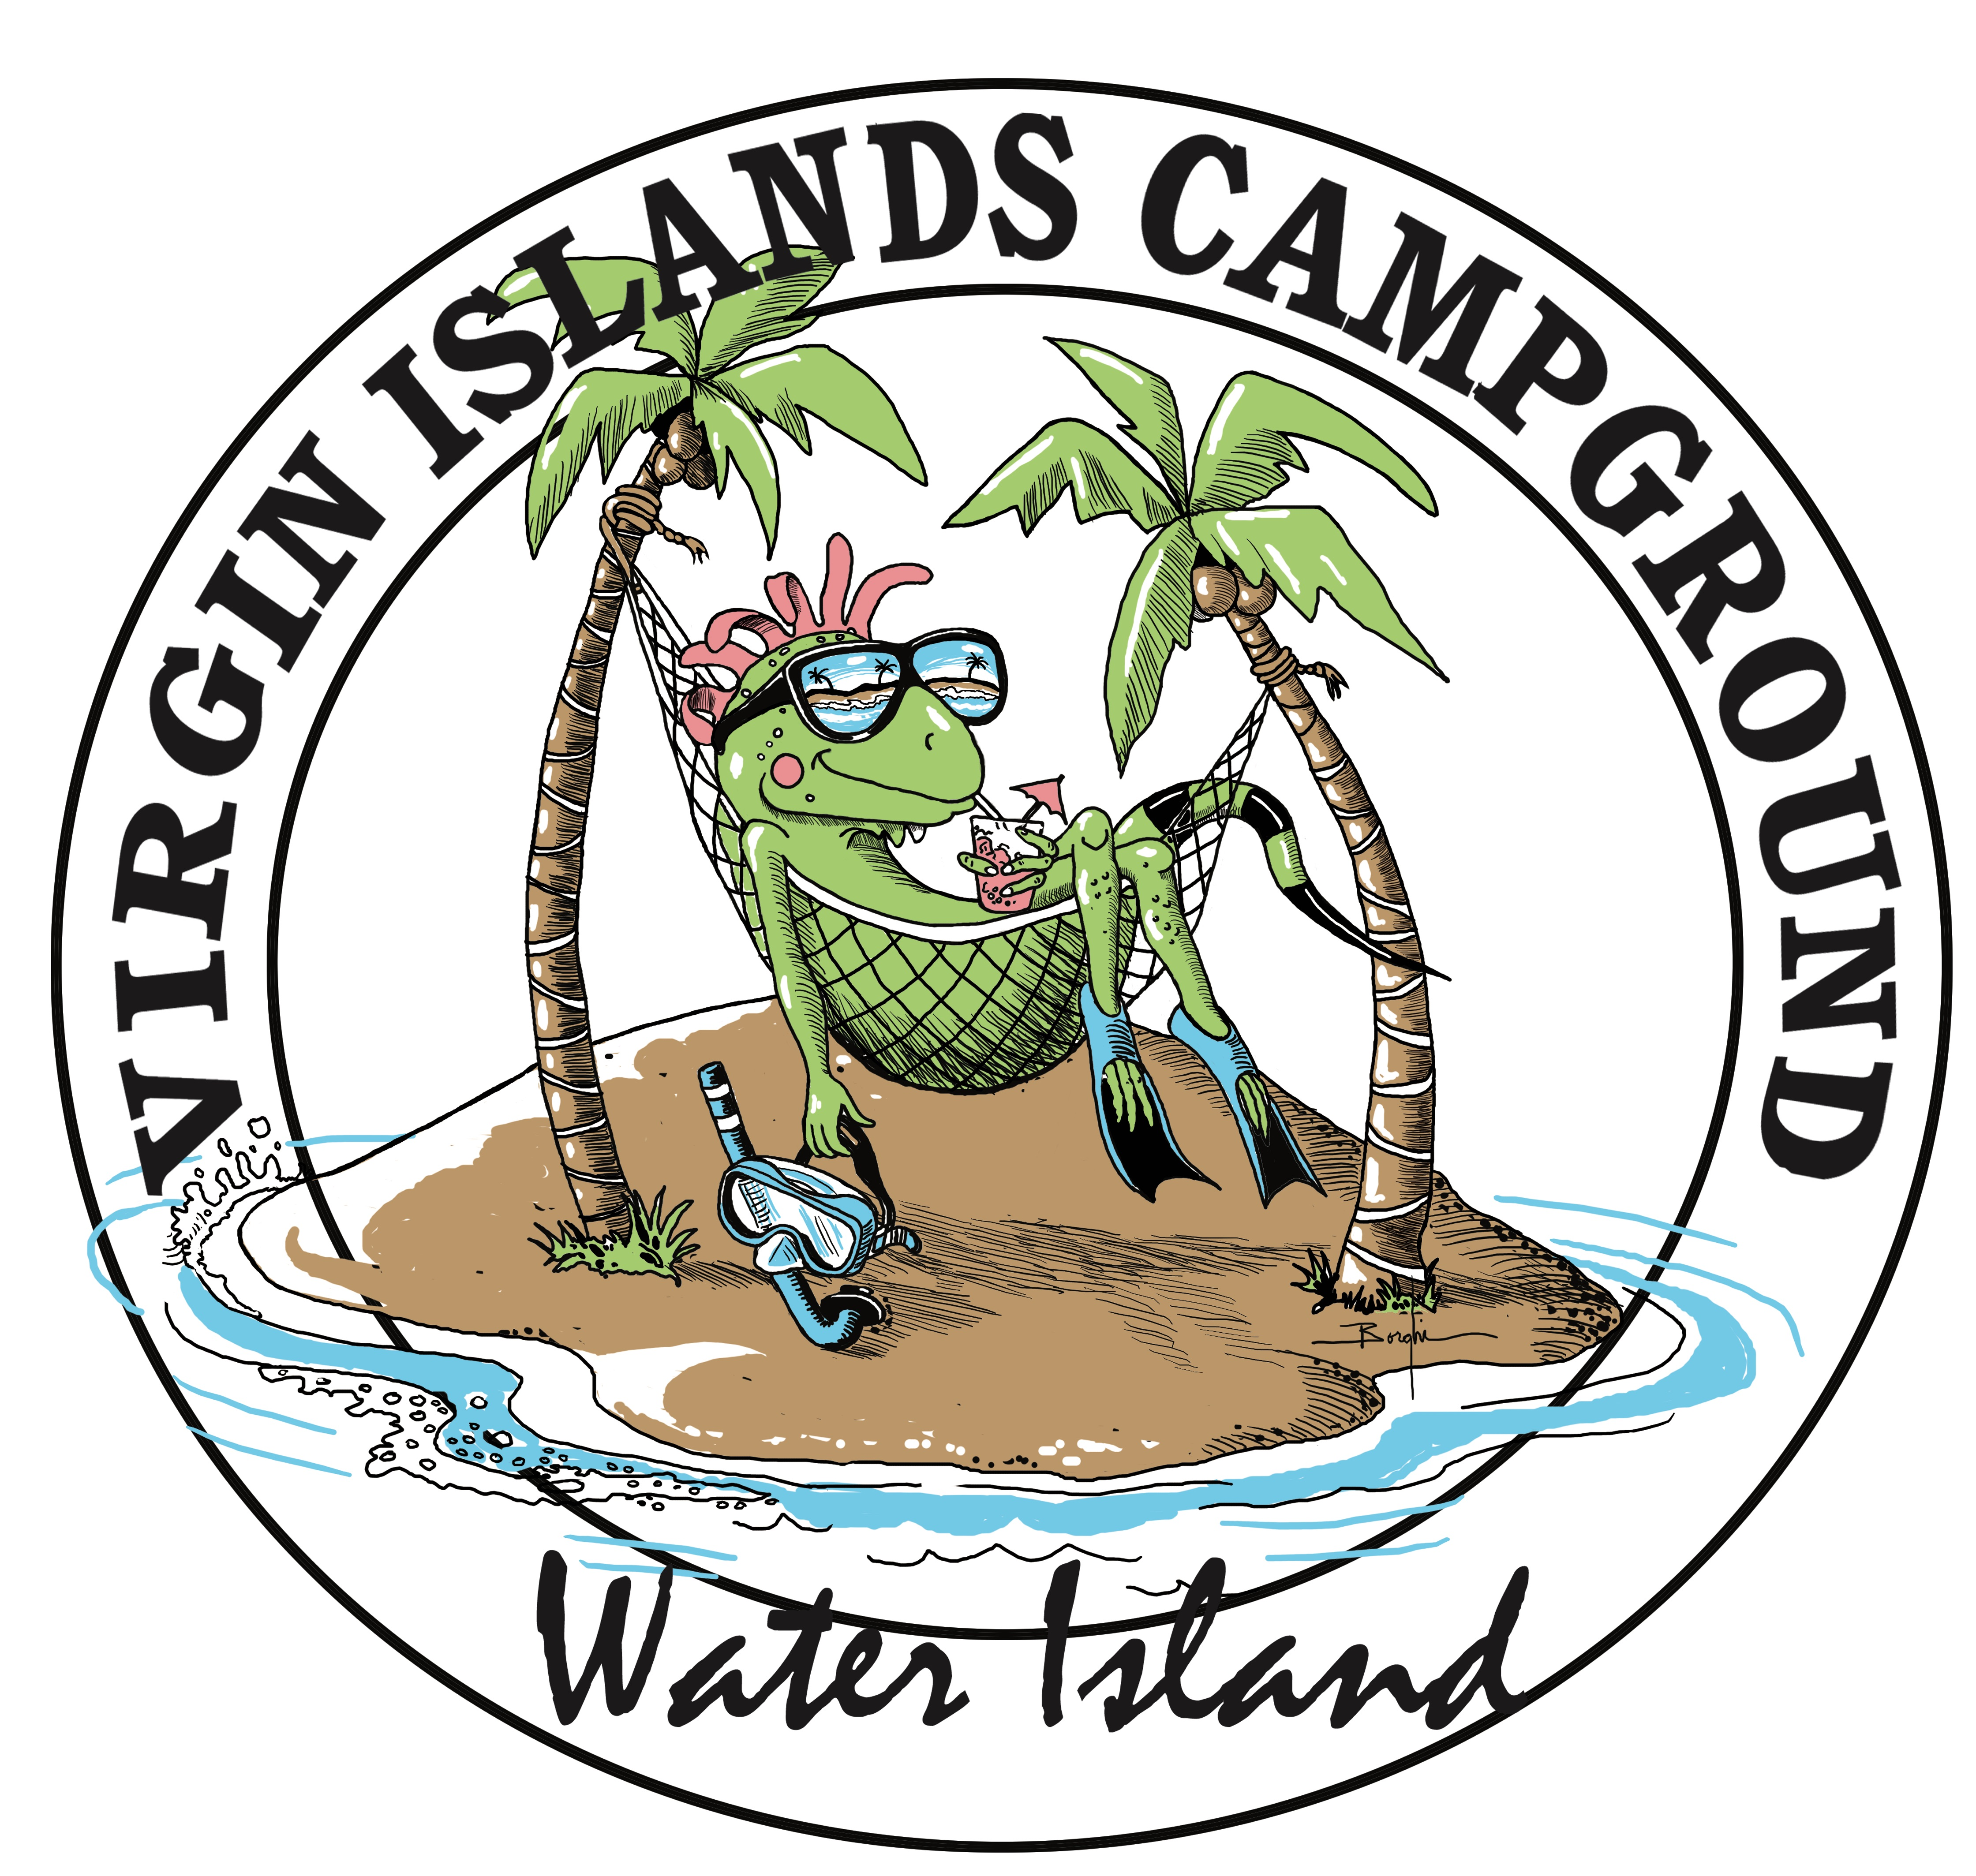 Virgin Islands Campground